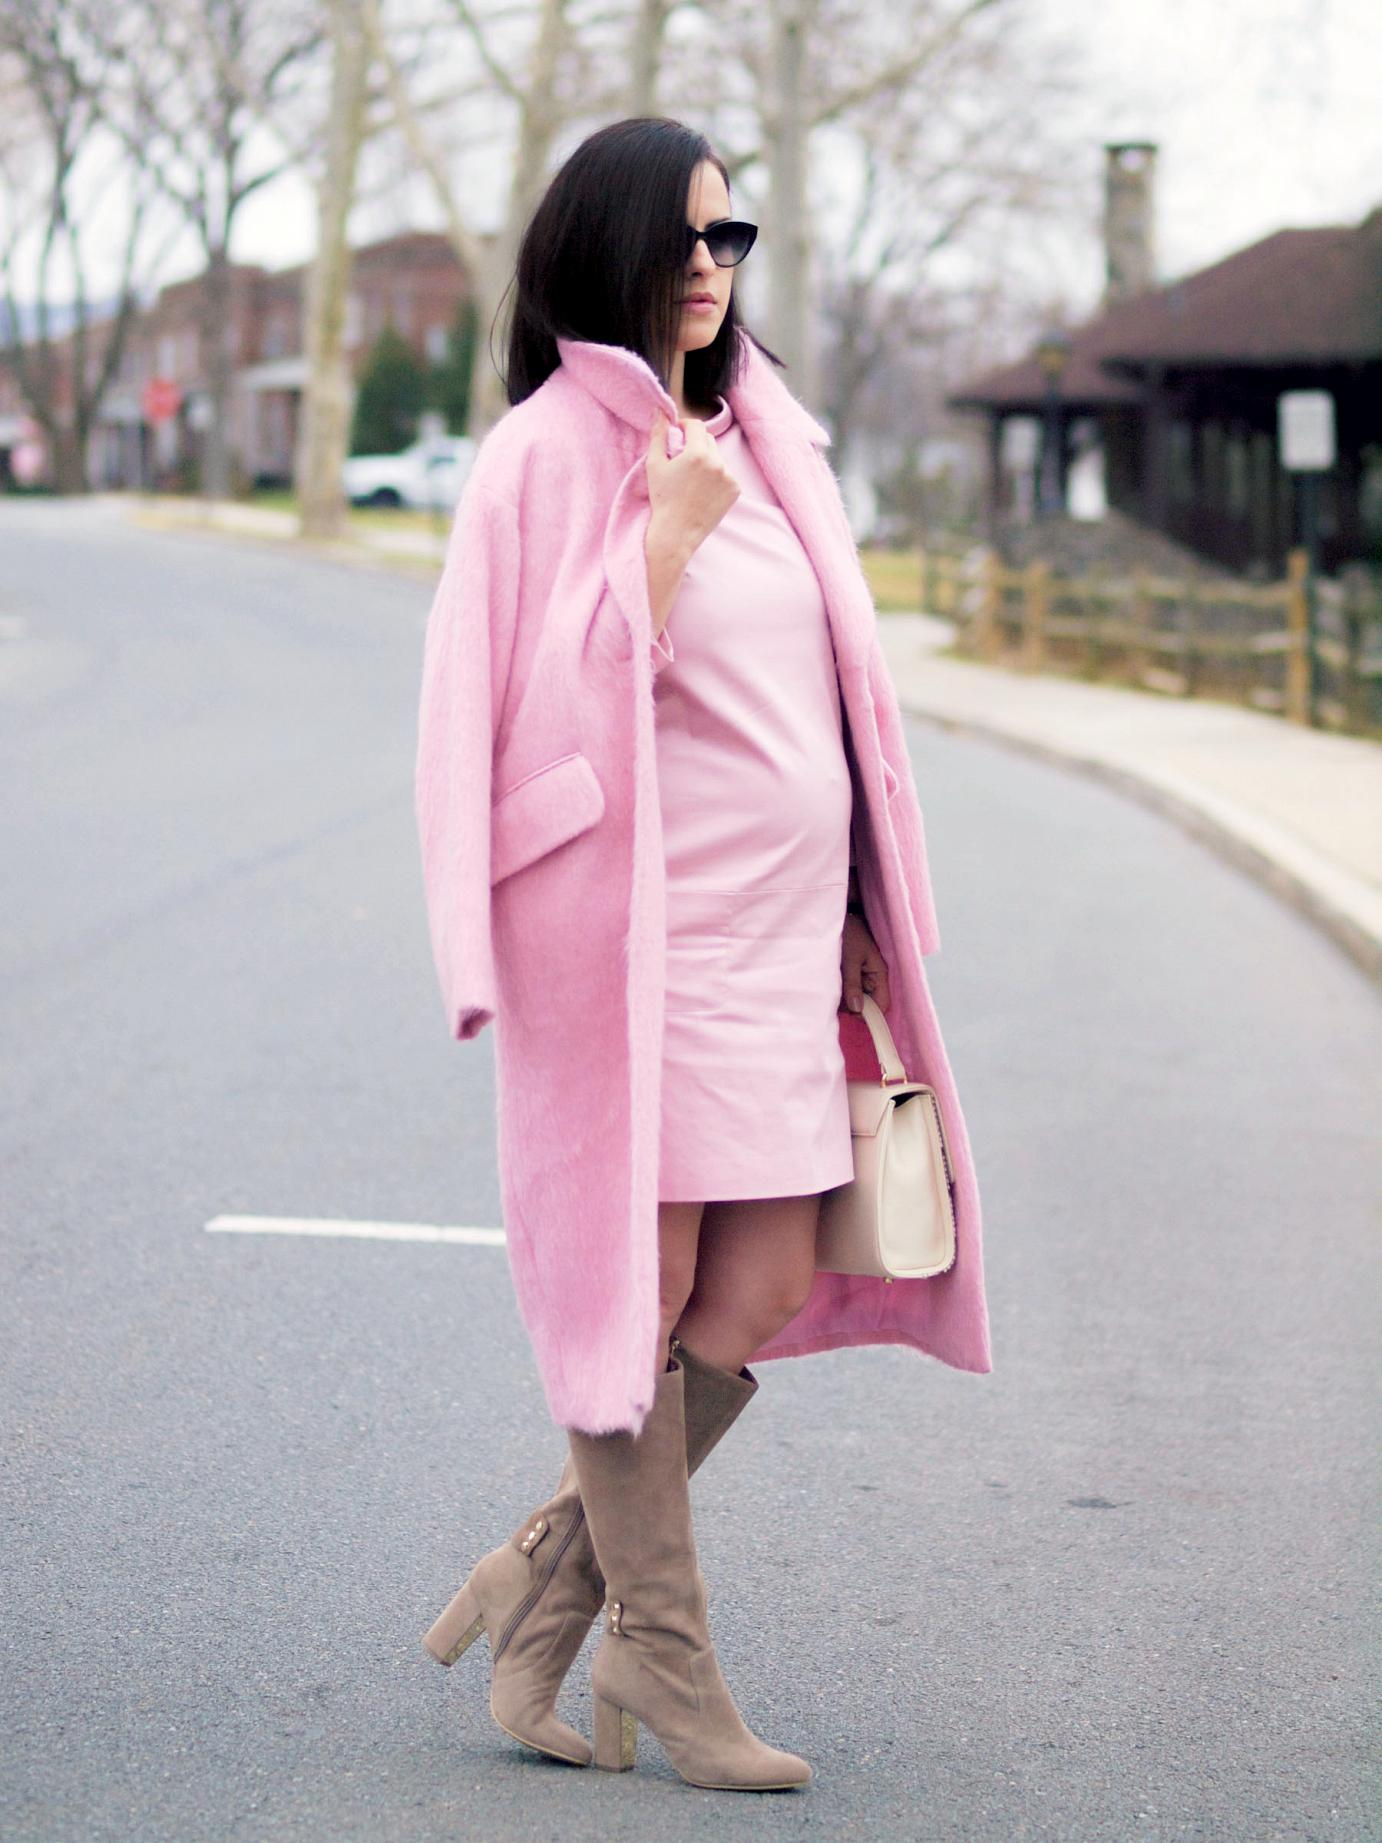 bittersweet colours, pink coat,  asos coat, pink dress, piol dress, anne klein boots, suede boots, fall street style, street style, maternity style, 26 weeks, monochrome look, pastels, powdery pink, fuzzy coat,